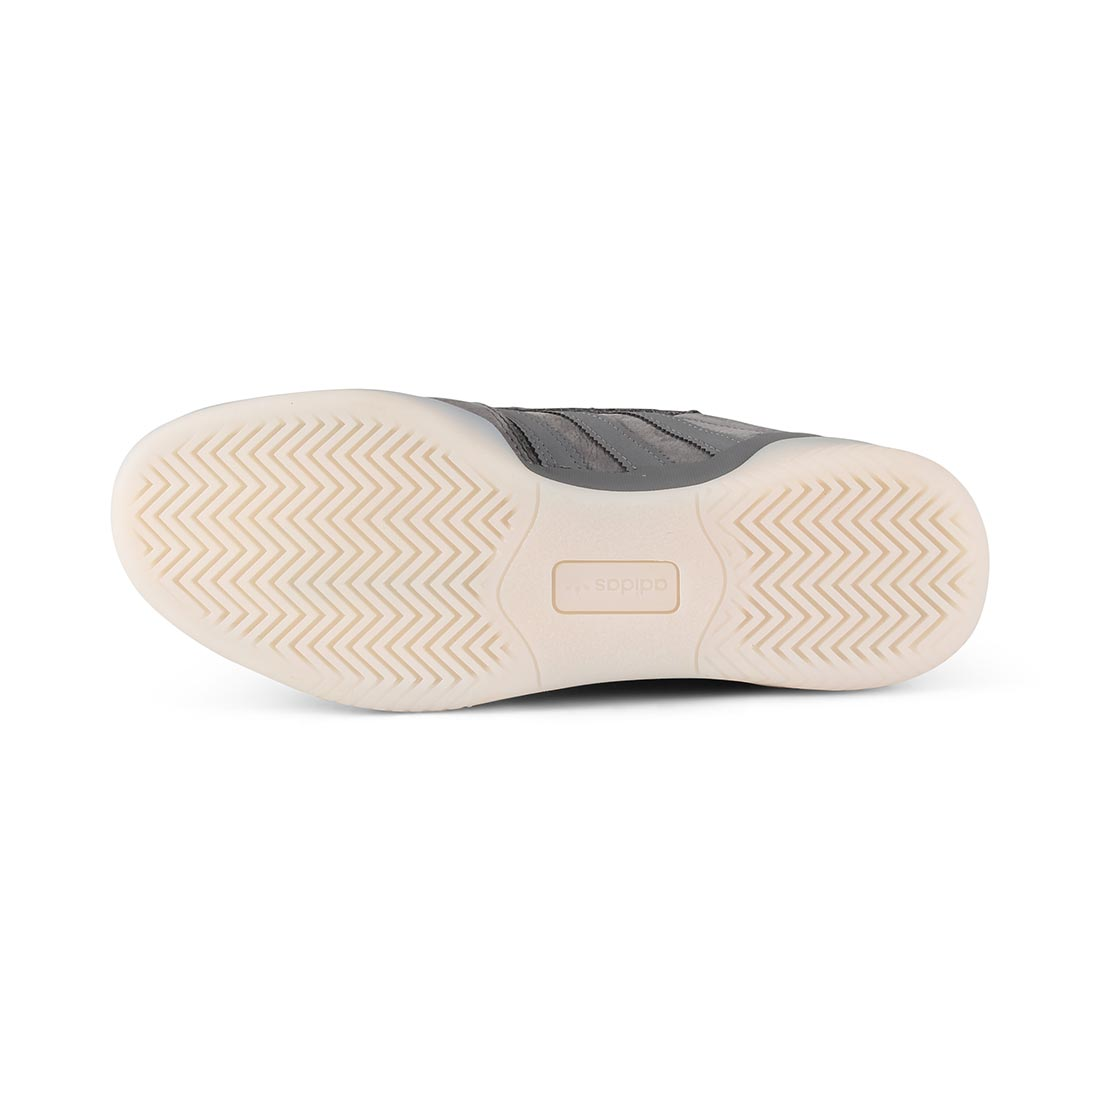 wholesale dealer 0347a 12bfb ... Adidas-Numbers-City-Cup-Shoes-Grey-Four-Carbon-. HomeShop ...